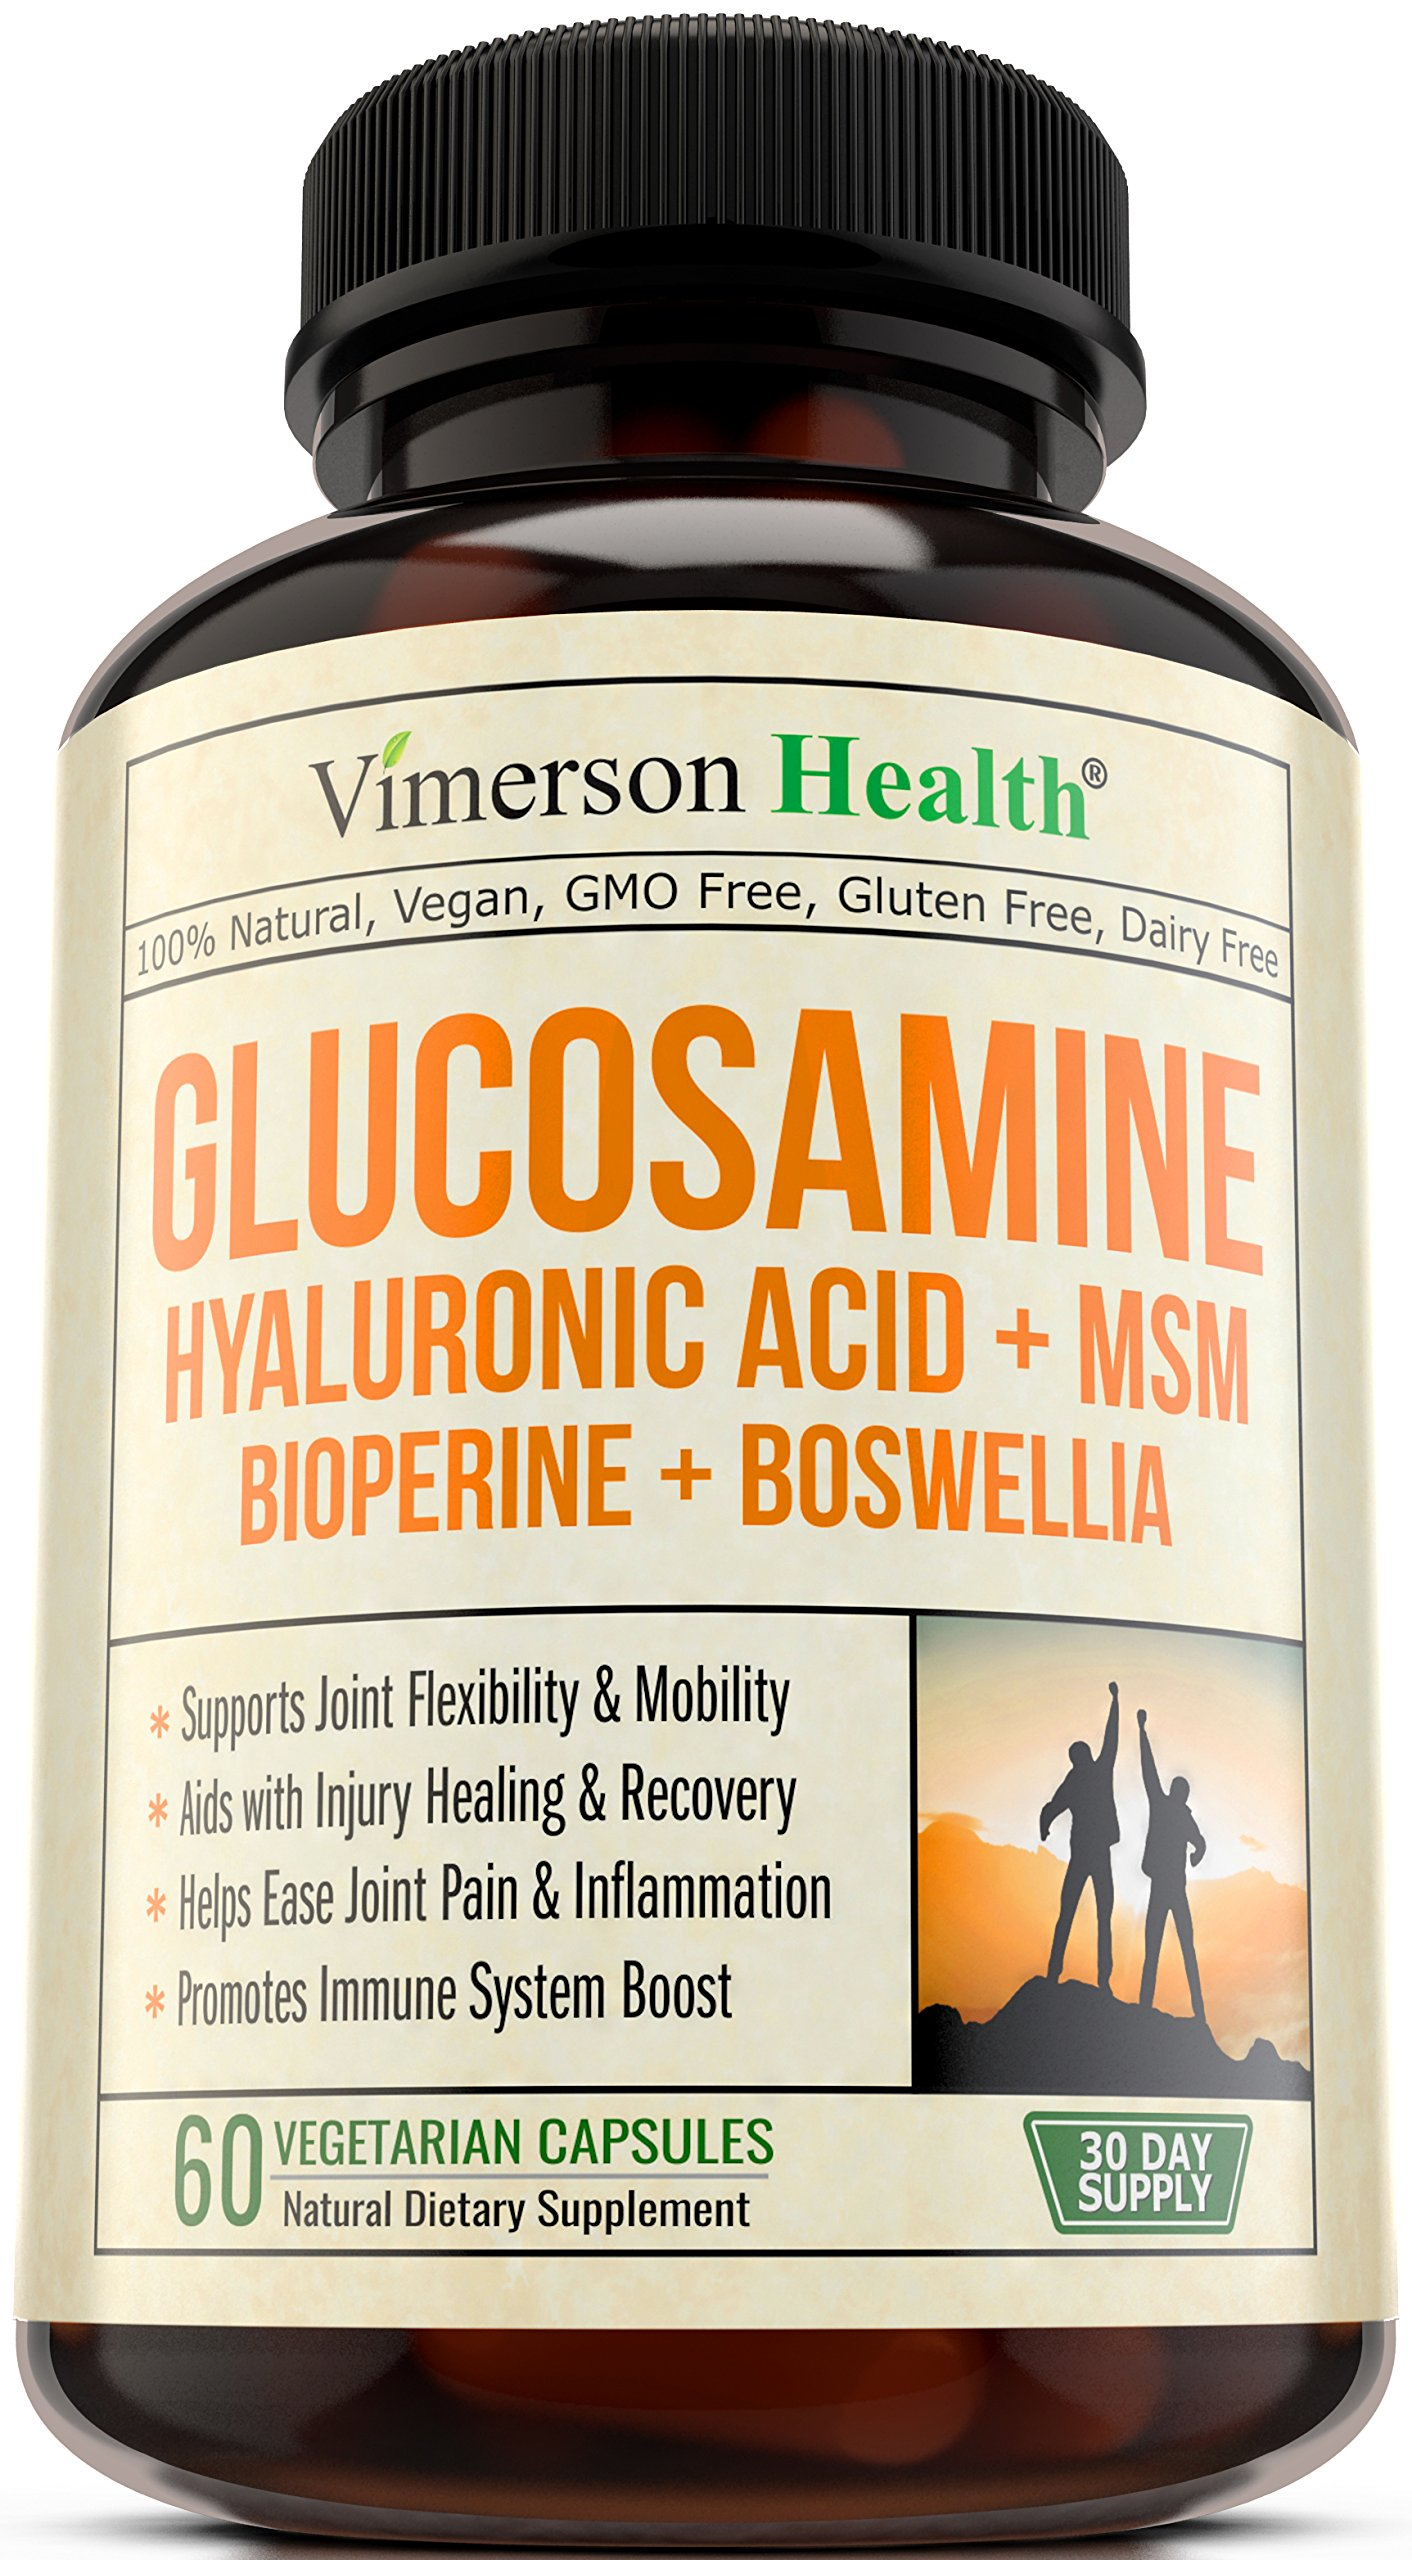 Glucosamine + Hyaluronic Acid + Bioperine + MSM + Boswellia - 100% Vegan Joint Pain Relief Supplement. Natural Anti-Inflammatory & Antioxidant Pills for your Back, Knees, Hands. Immune System Booster